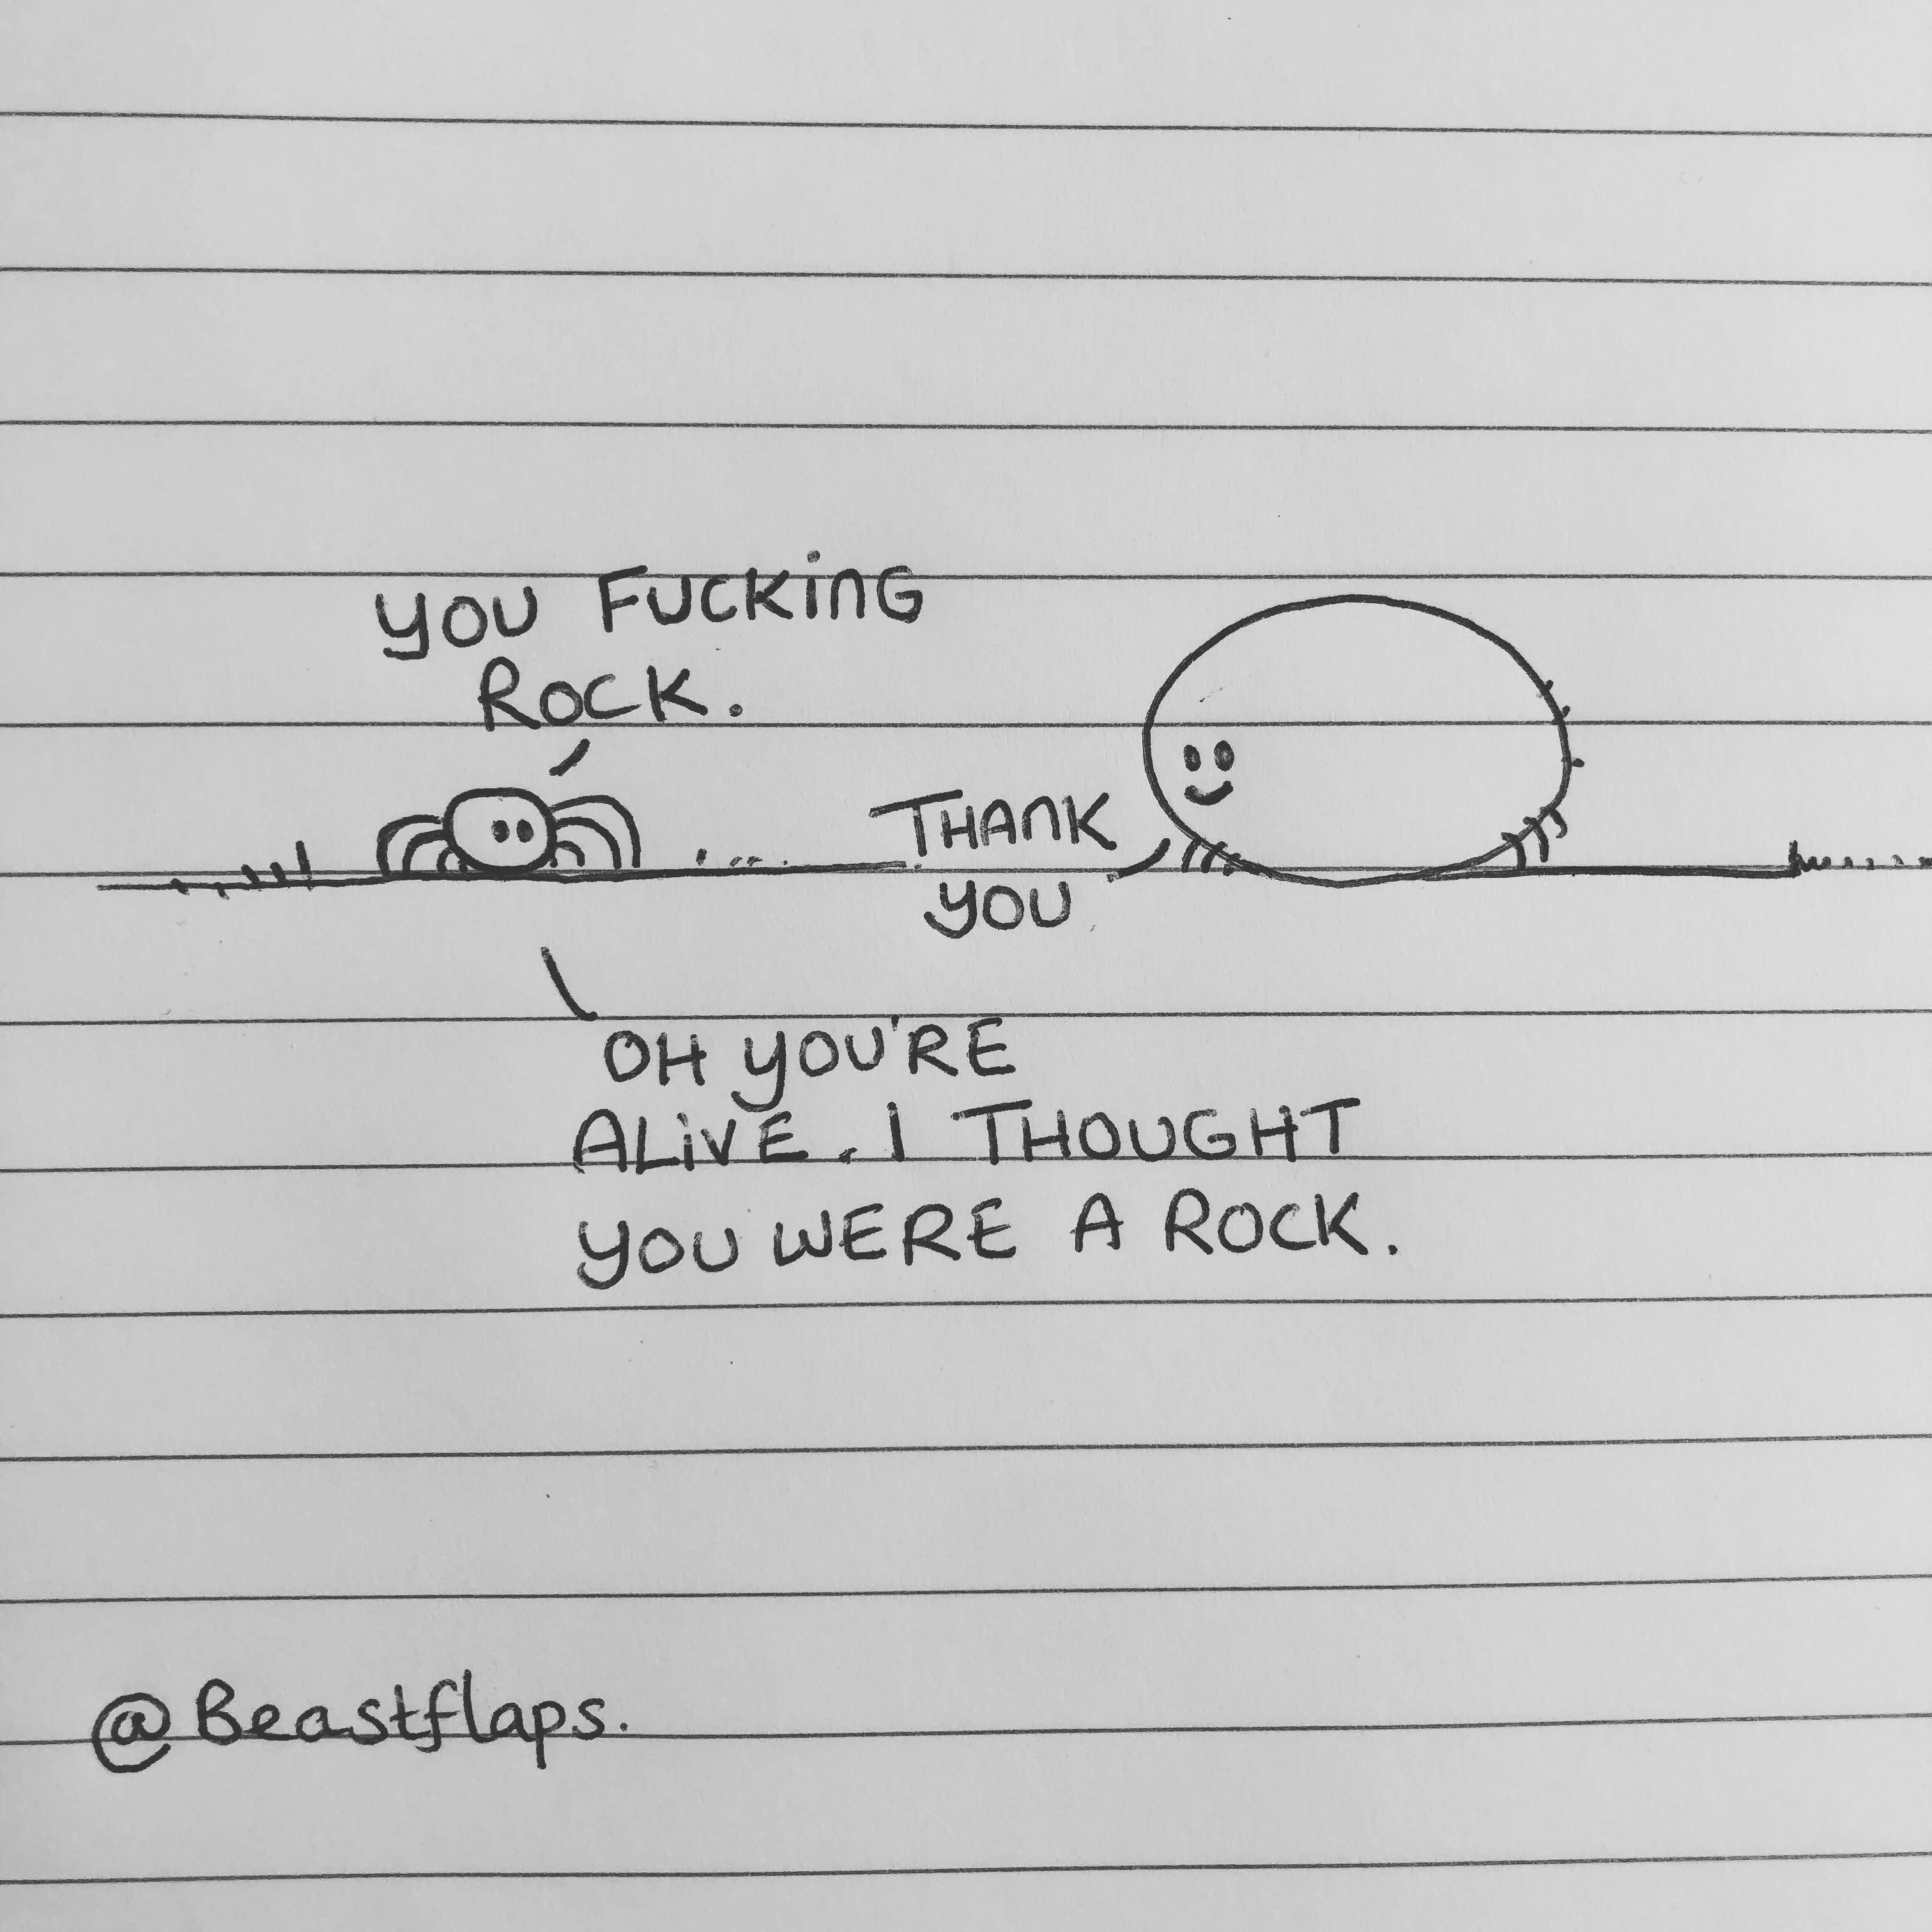 Pin by bluey oceania on just some fun funny doodles